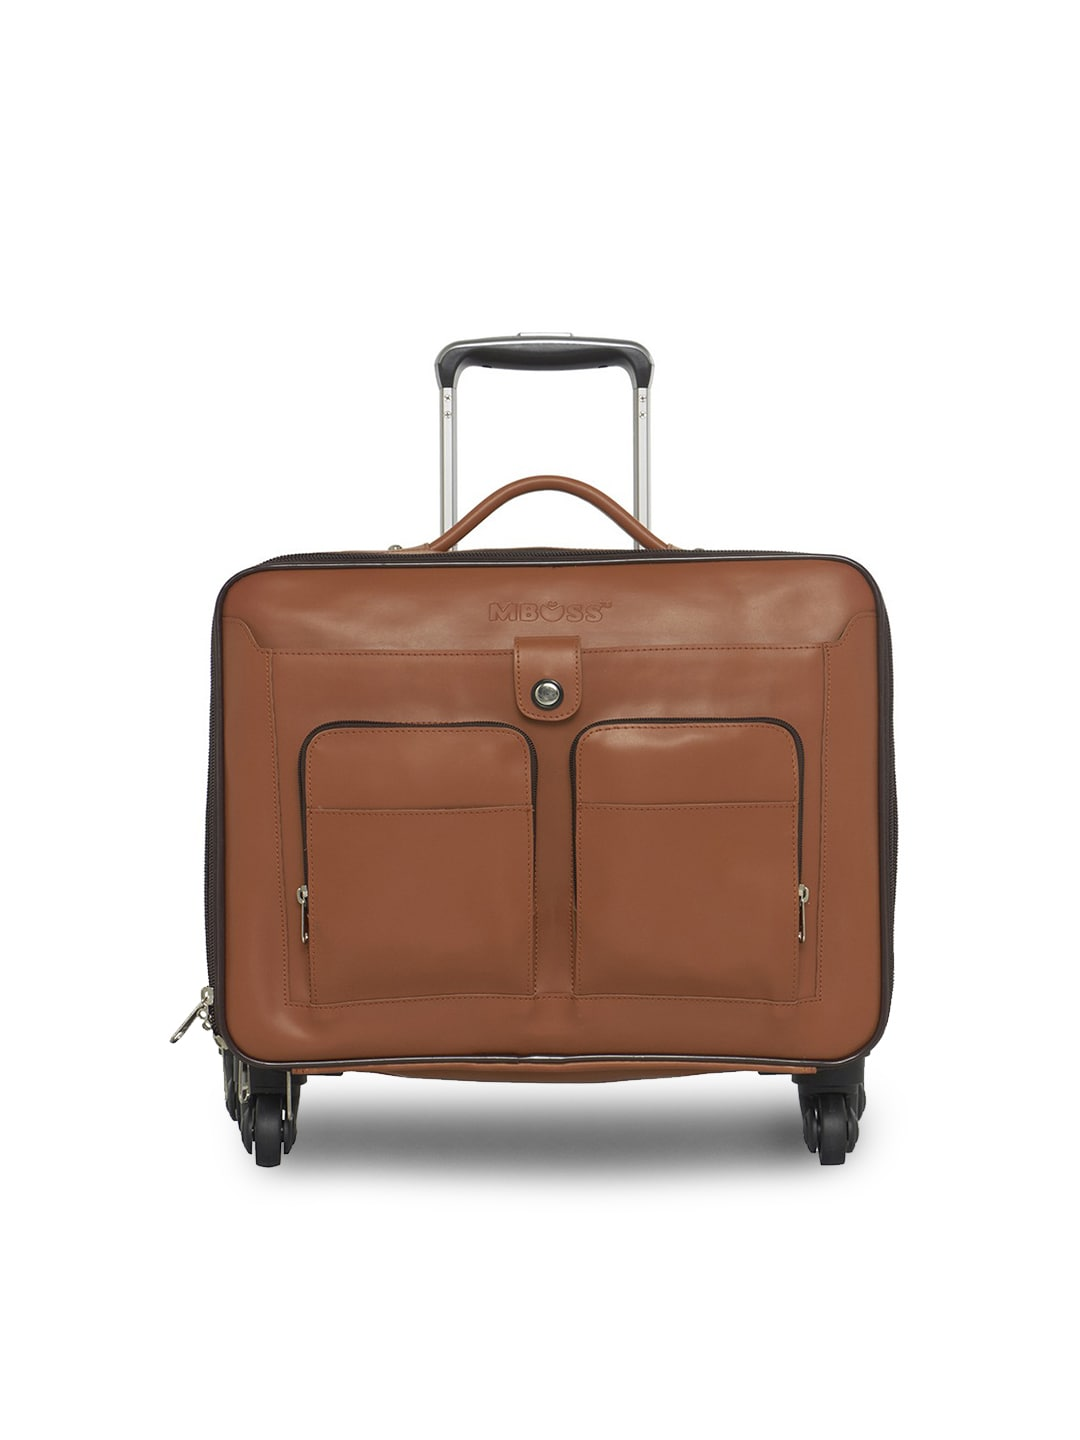 Travelling Bags Accessories Laptop - Buy Travelling Bags Accessories Laptop  online in India b7e31f9b02d1b